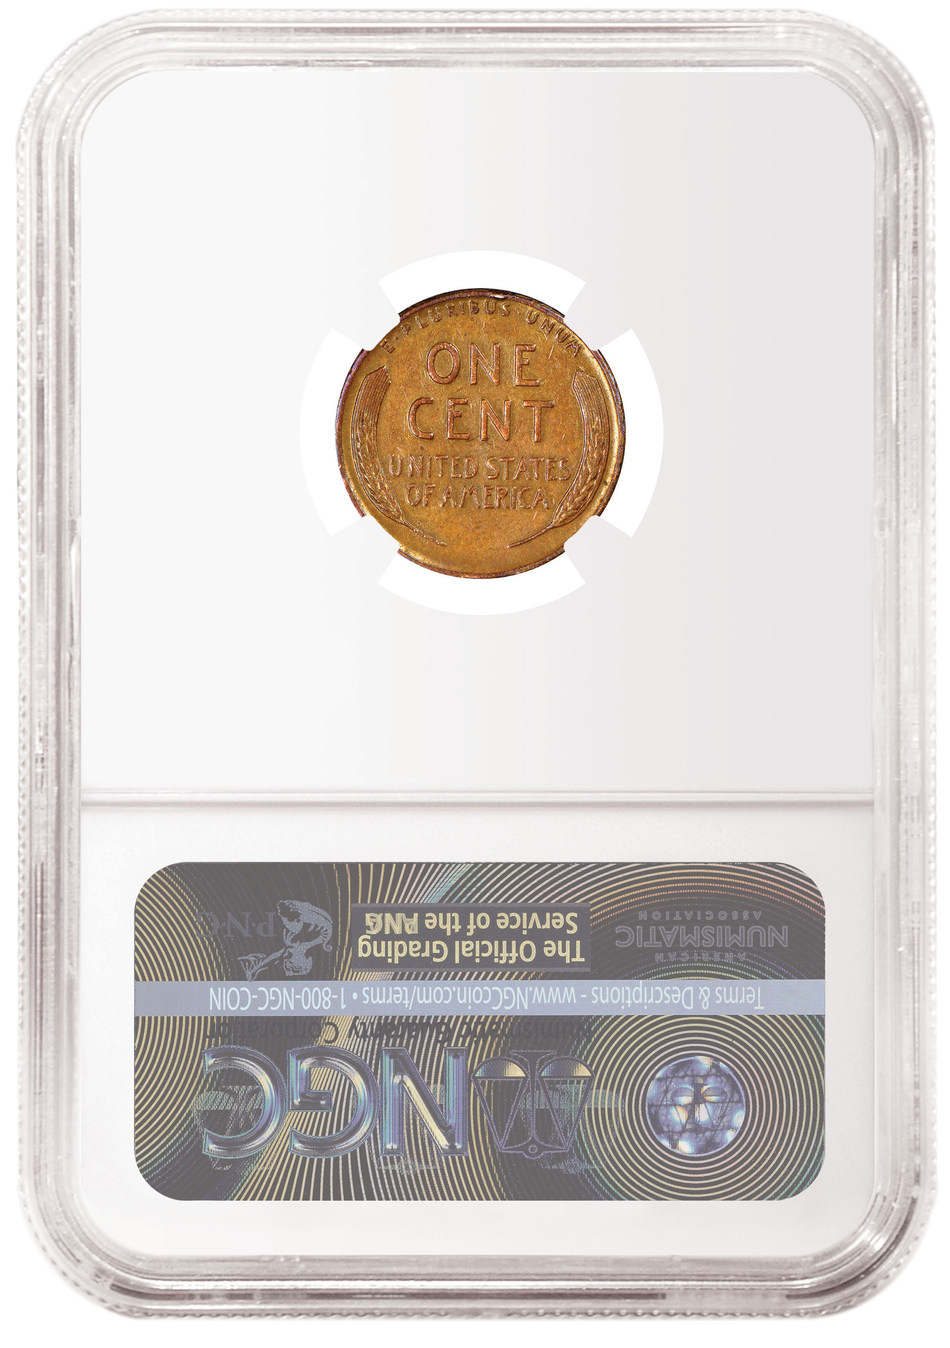 Reverse of the 1943 Bronze Cent, graded NGC AU 53 BN, and pedigreed as the Don Lutes, Jr. Discovery Specimen